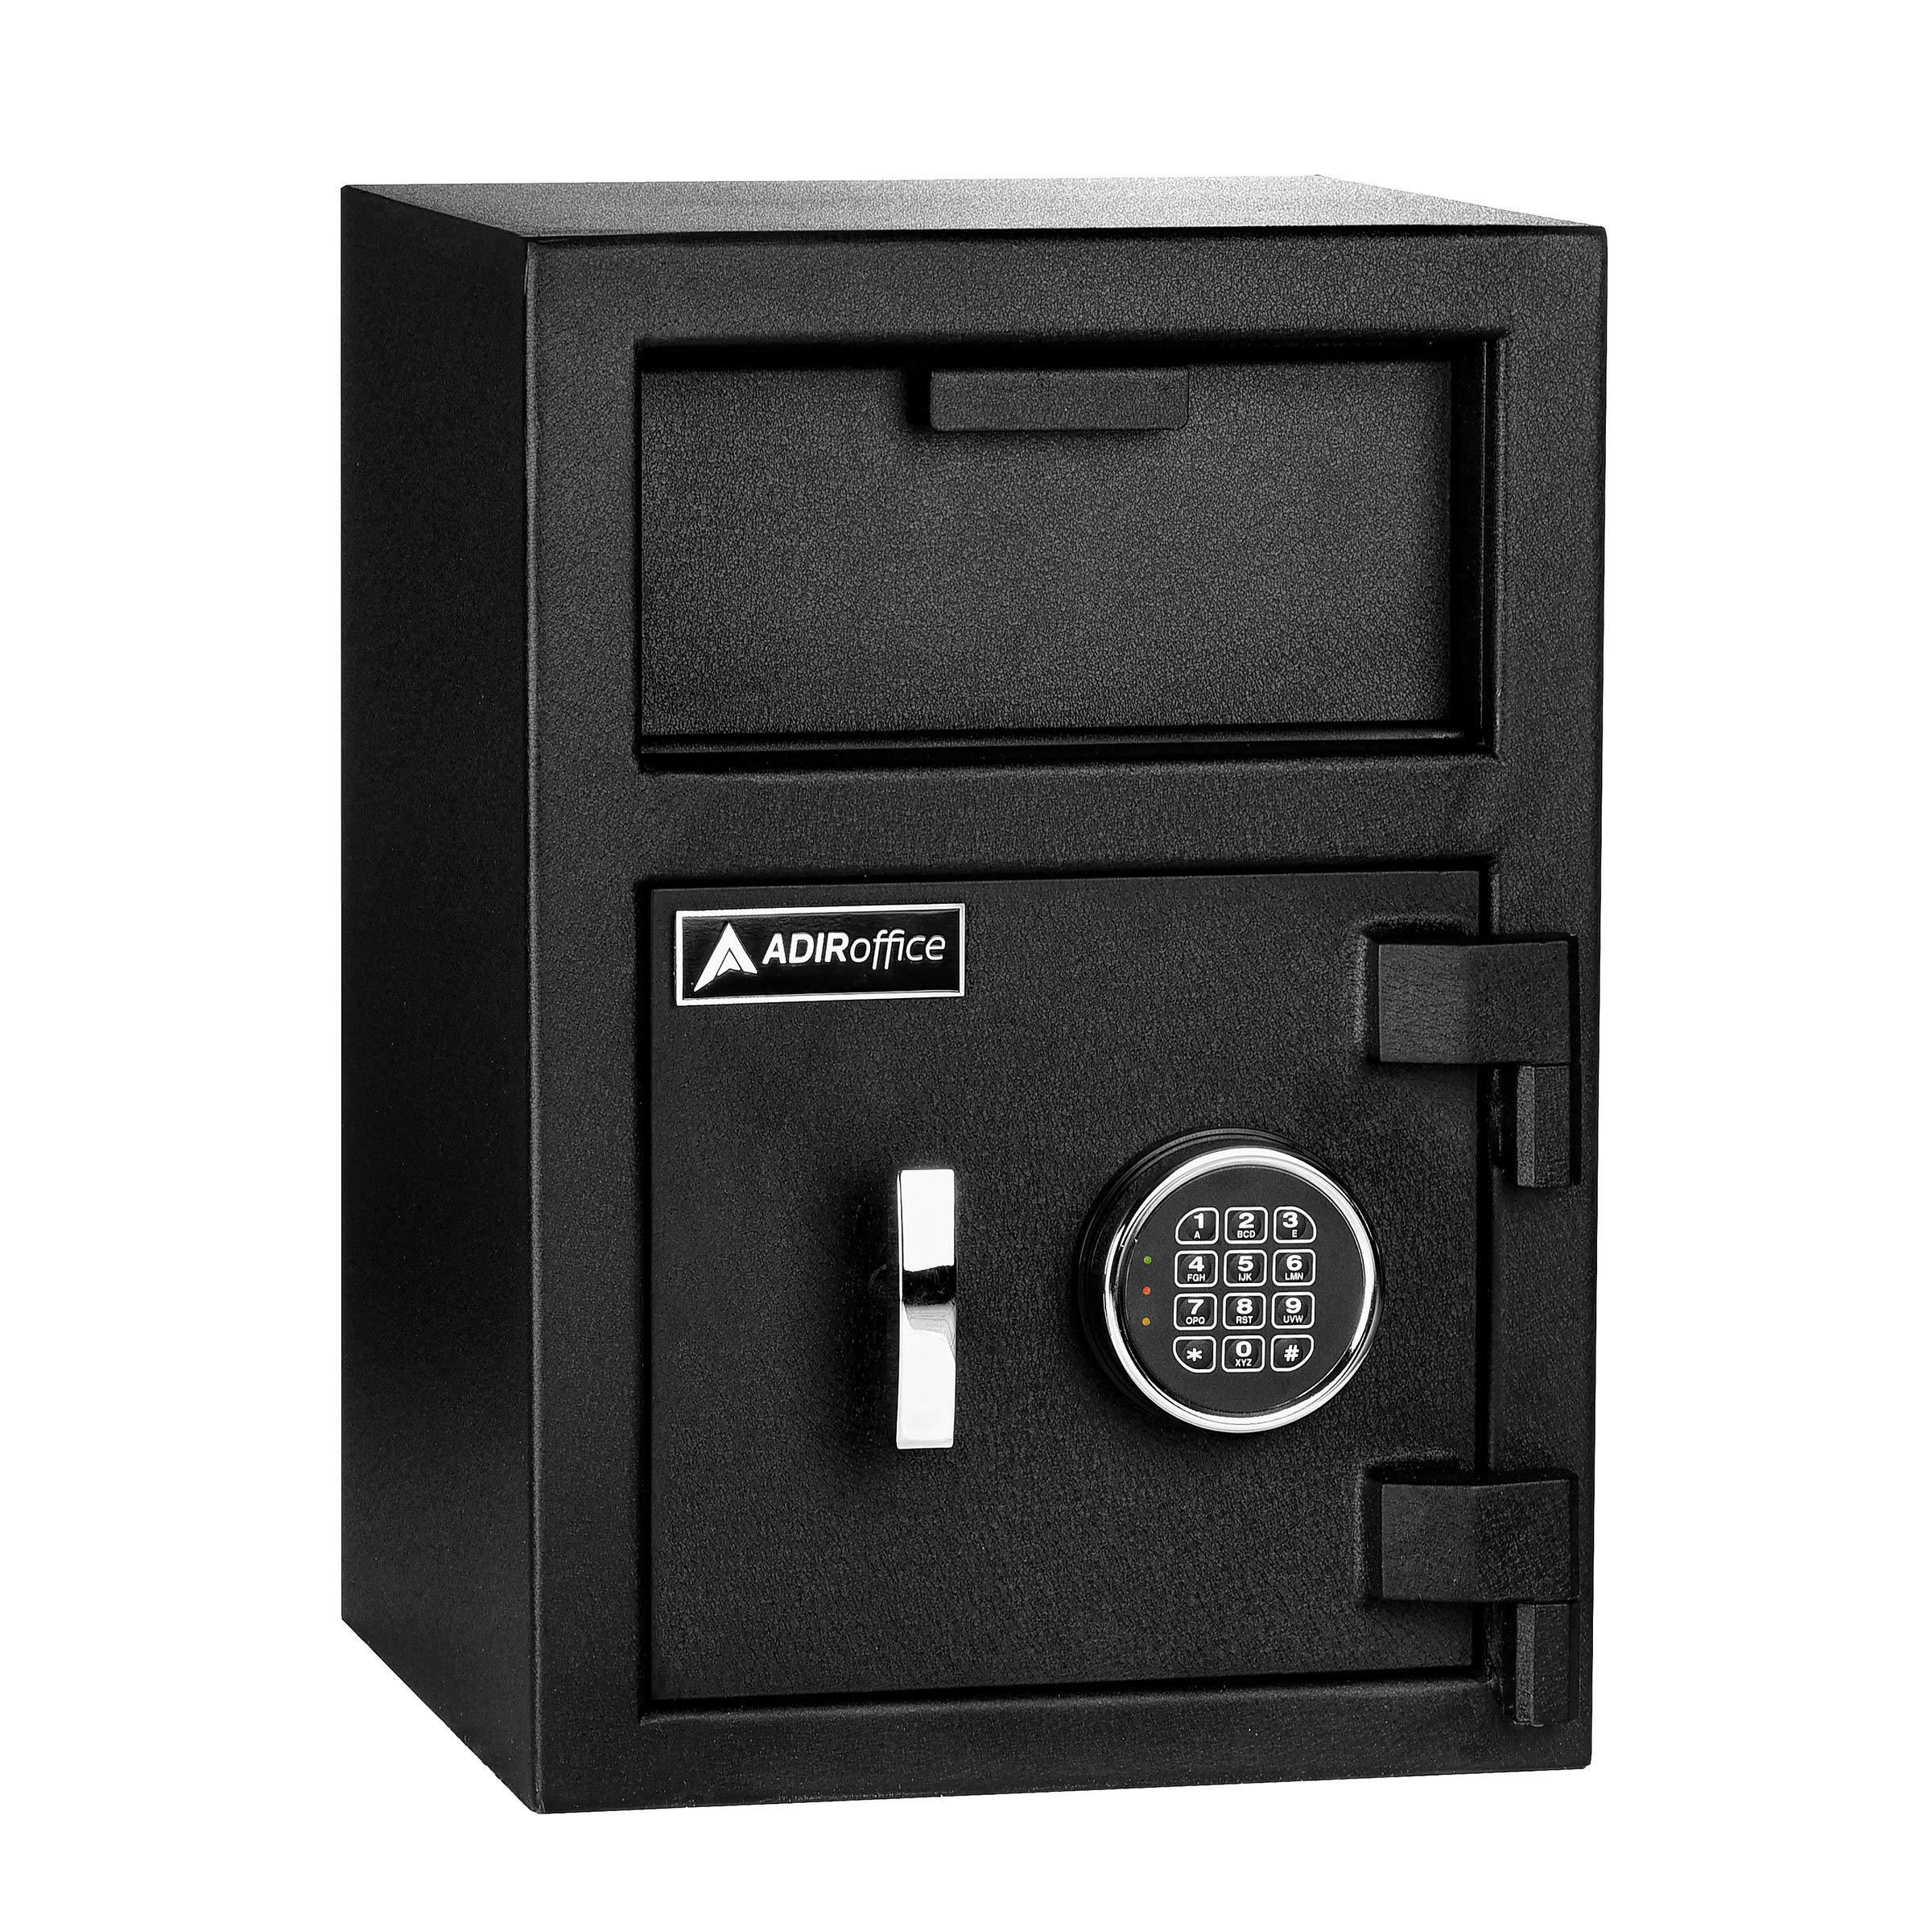 AdirOffice Keypad Lock Drop Box Safe - Industrial Strength Security Storage with Digital Lock - Safety for Home & Business Use (Medium) by AdirOffice